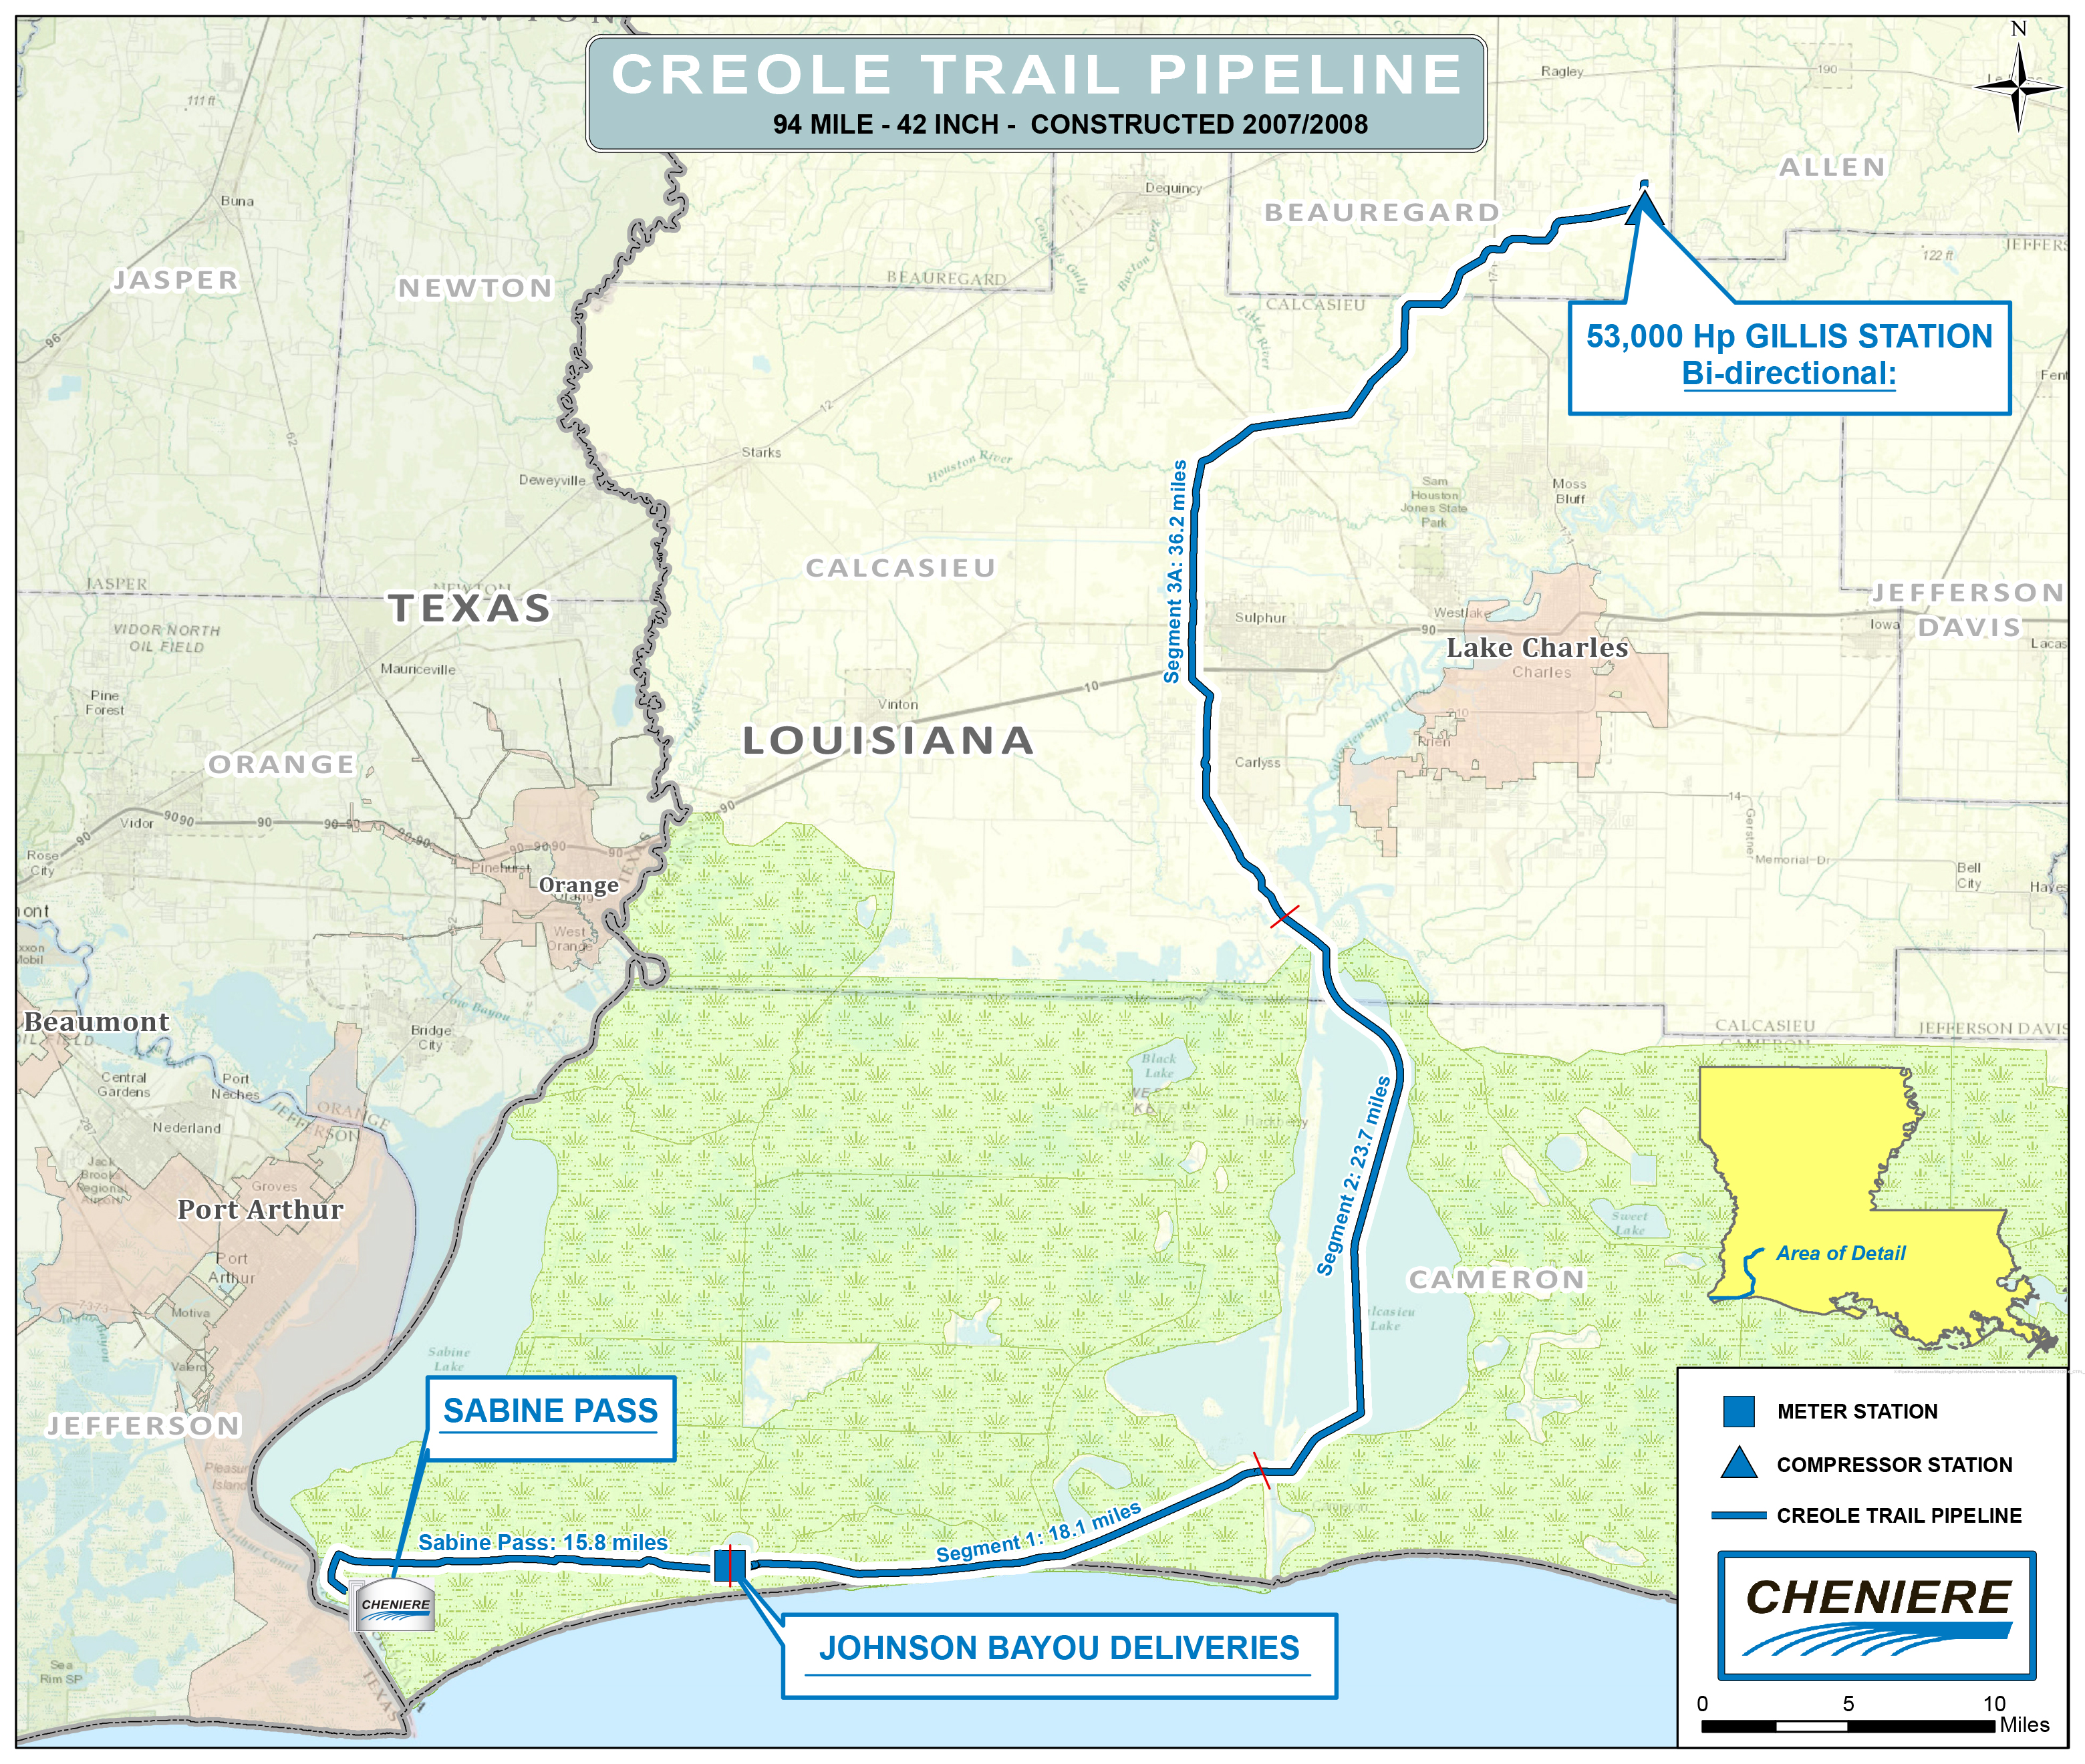 Creole Trail Pipeline